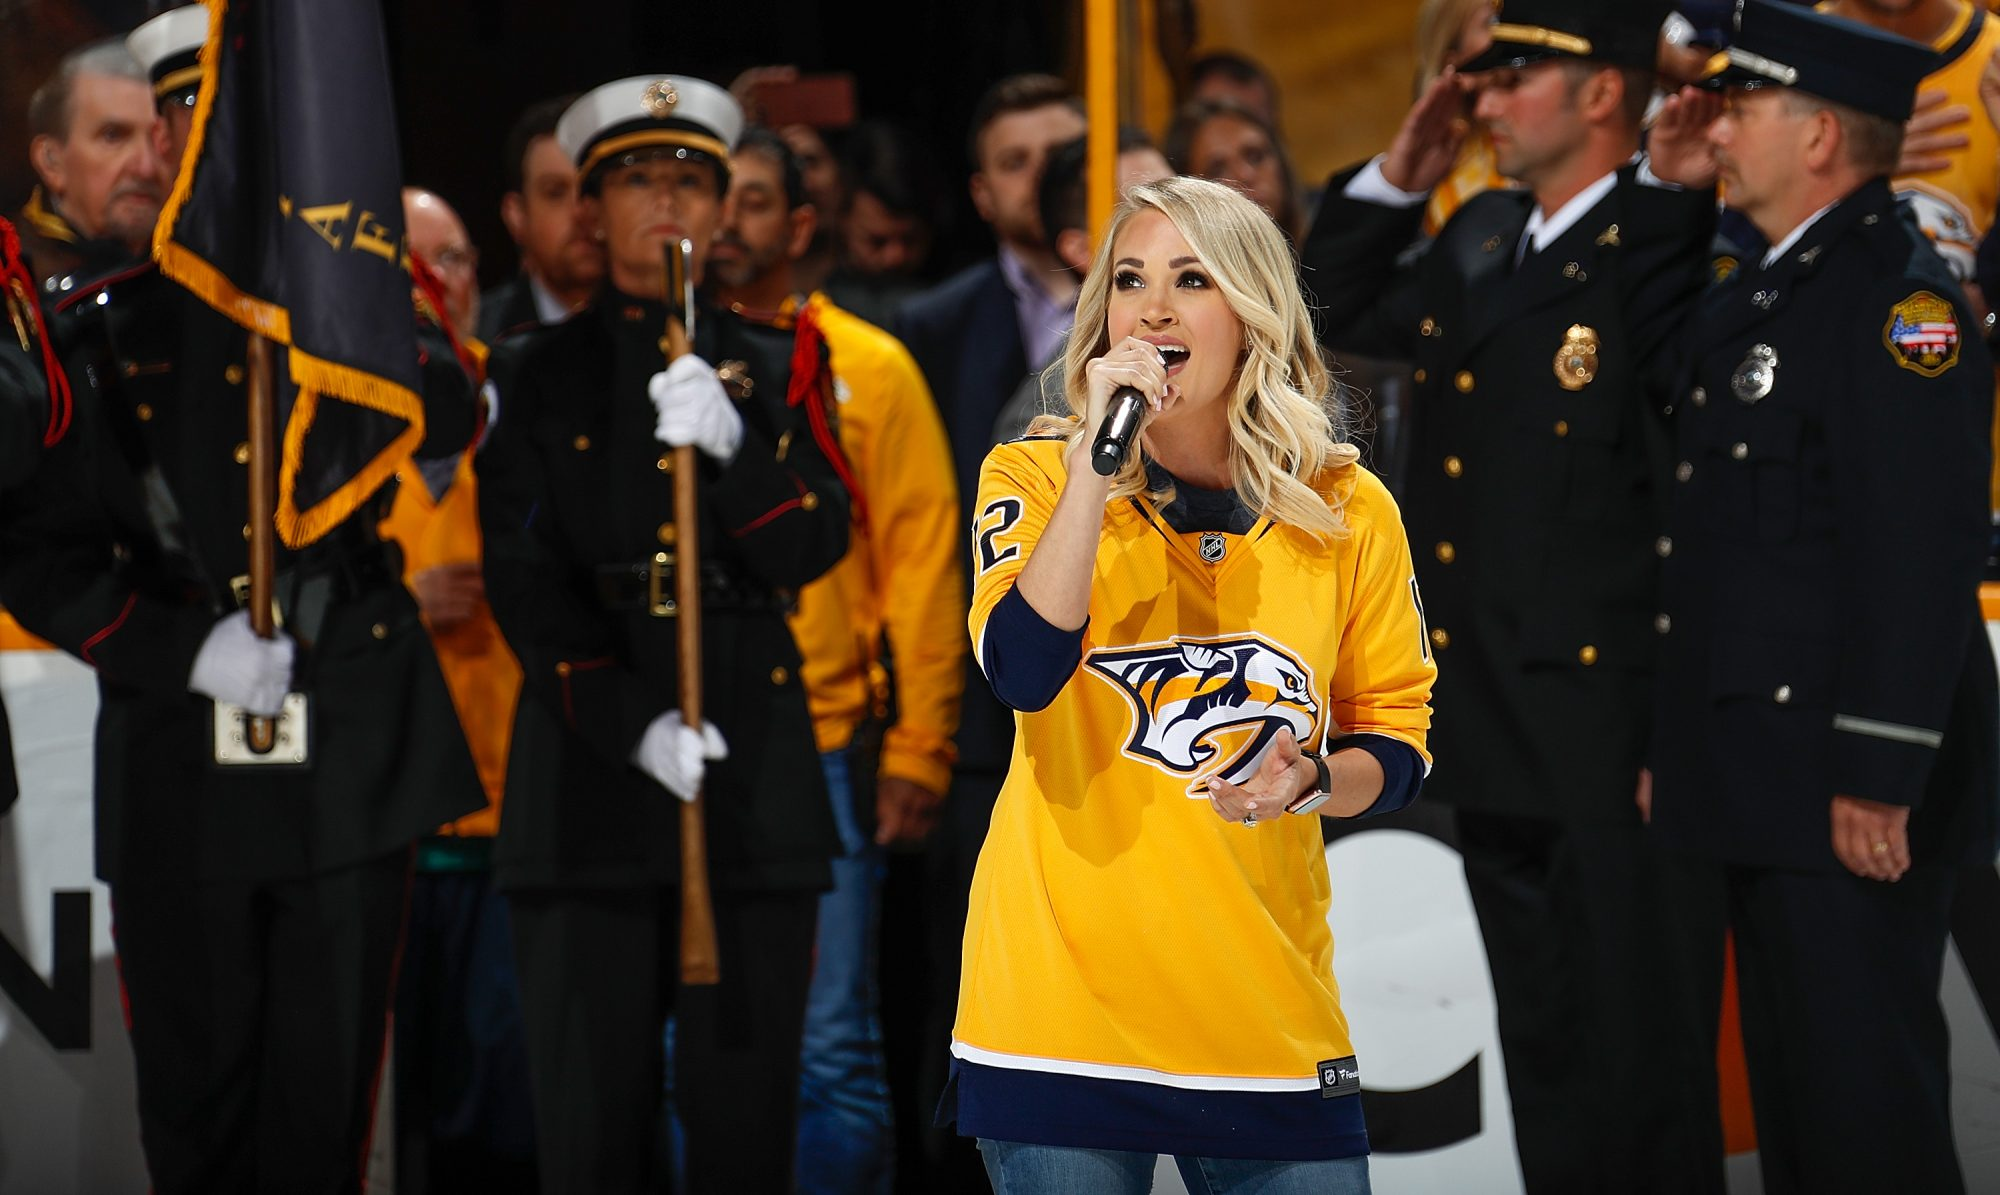 Carrie Underwood Star-Spangled Banner